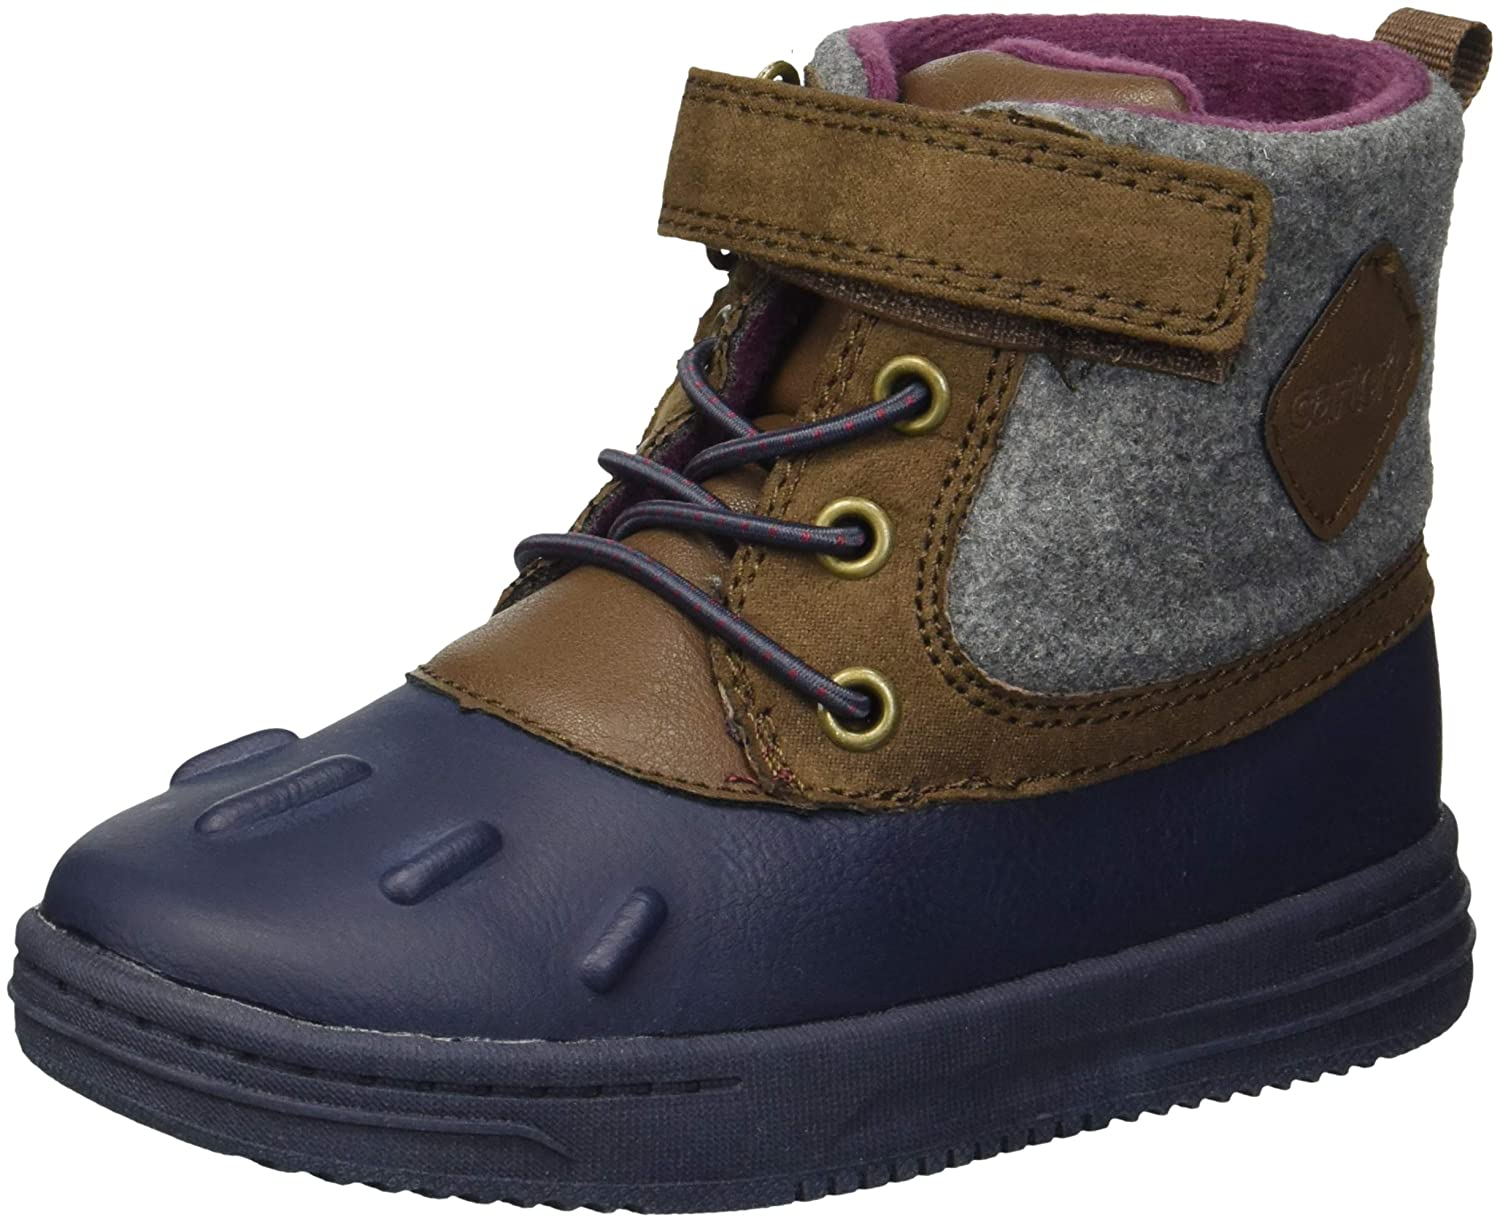 Carter's Kids Boy's Bay2-b Navy Duck Boot Fashion Carter's CF180272